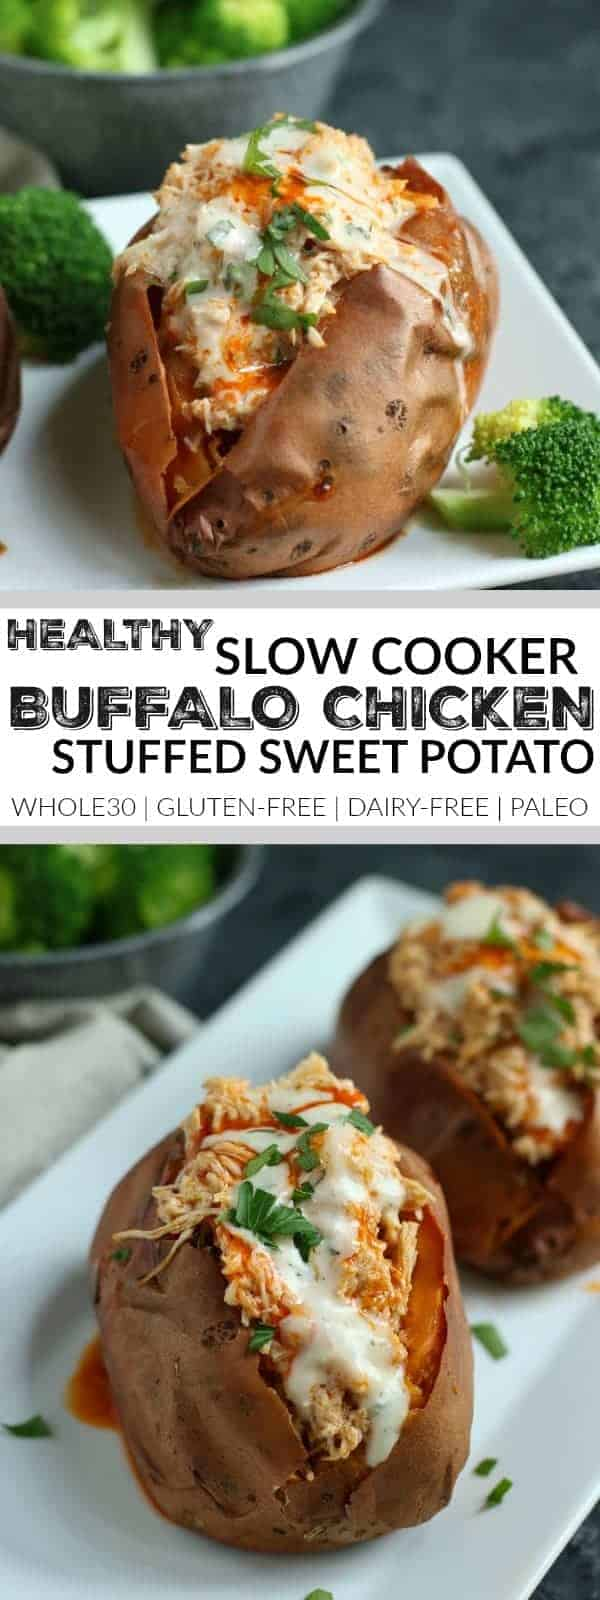 Pinterest image for Slow Cooker Buffalo Chicken Sweet Potatoes